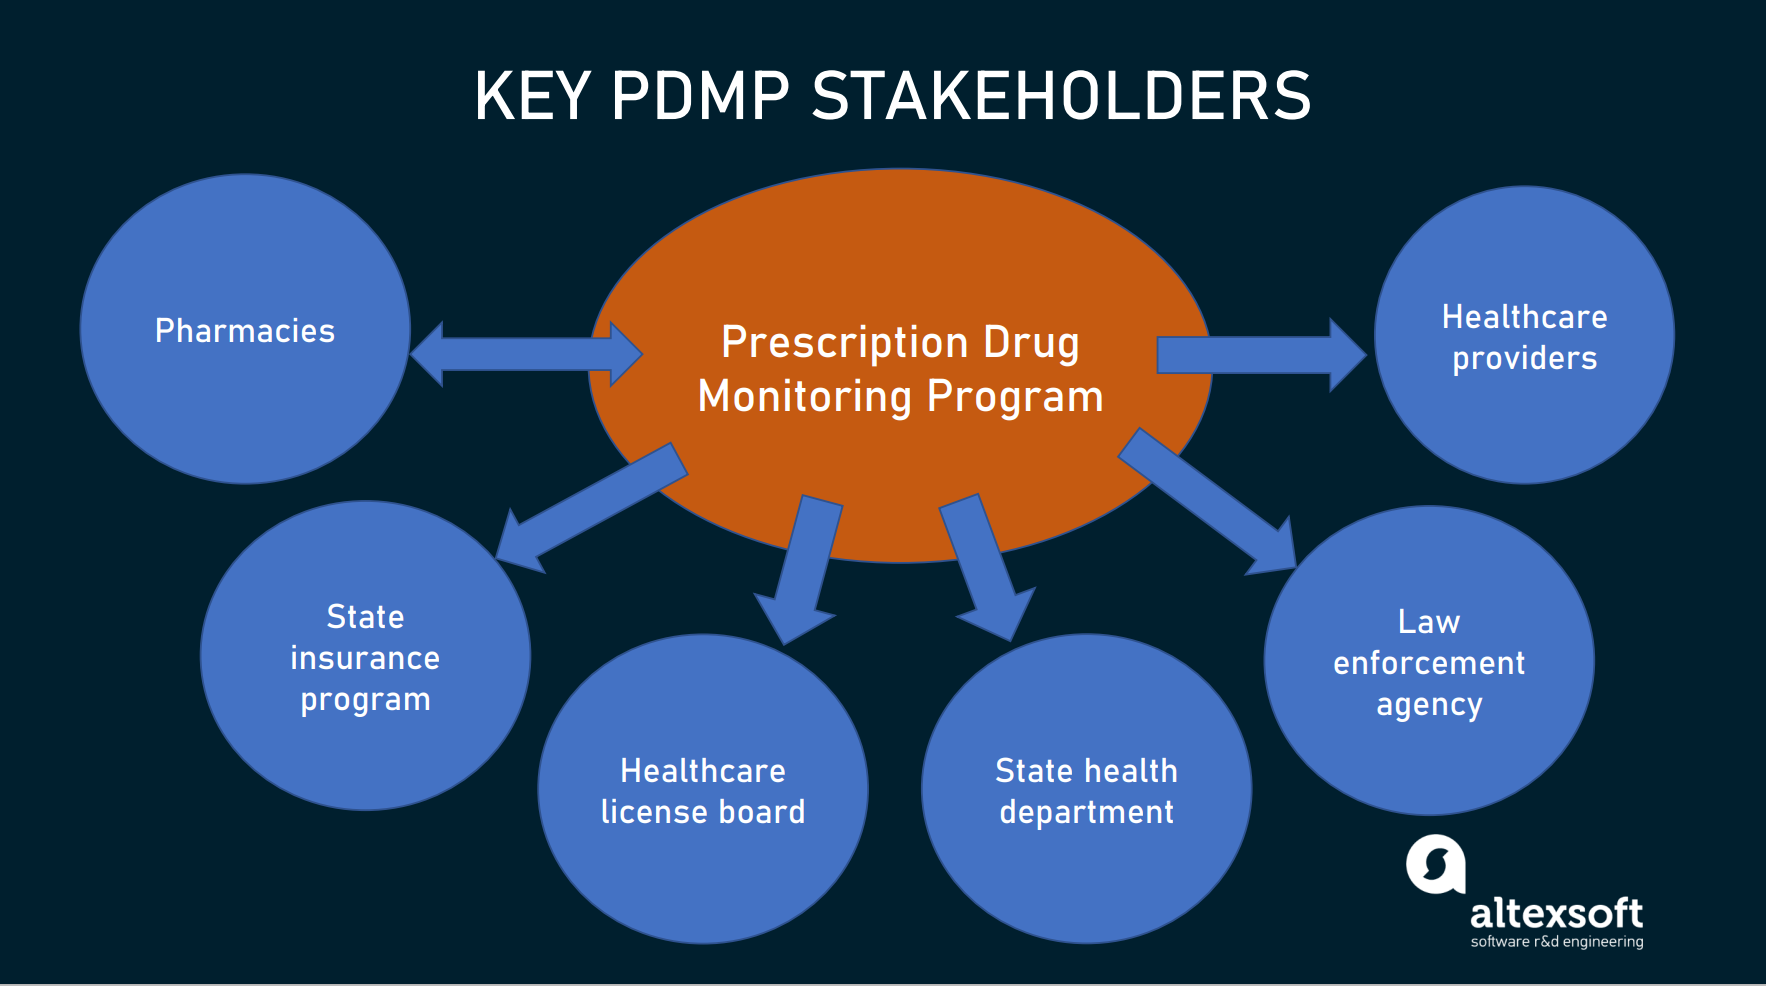 PDMP stakeholders